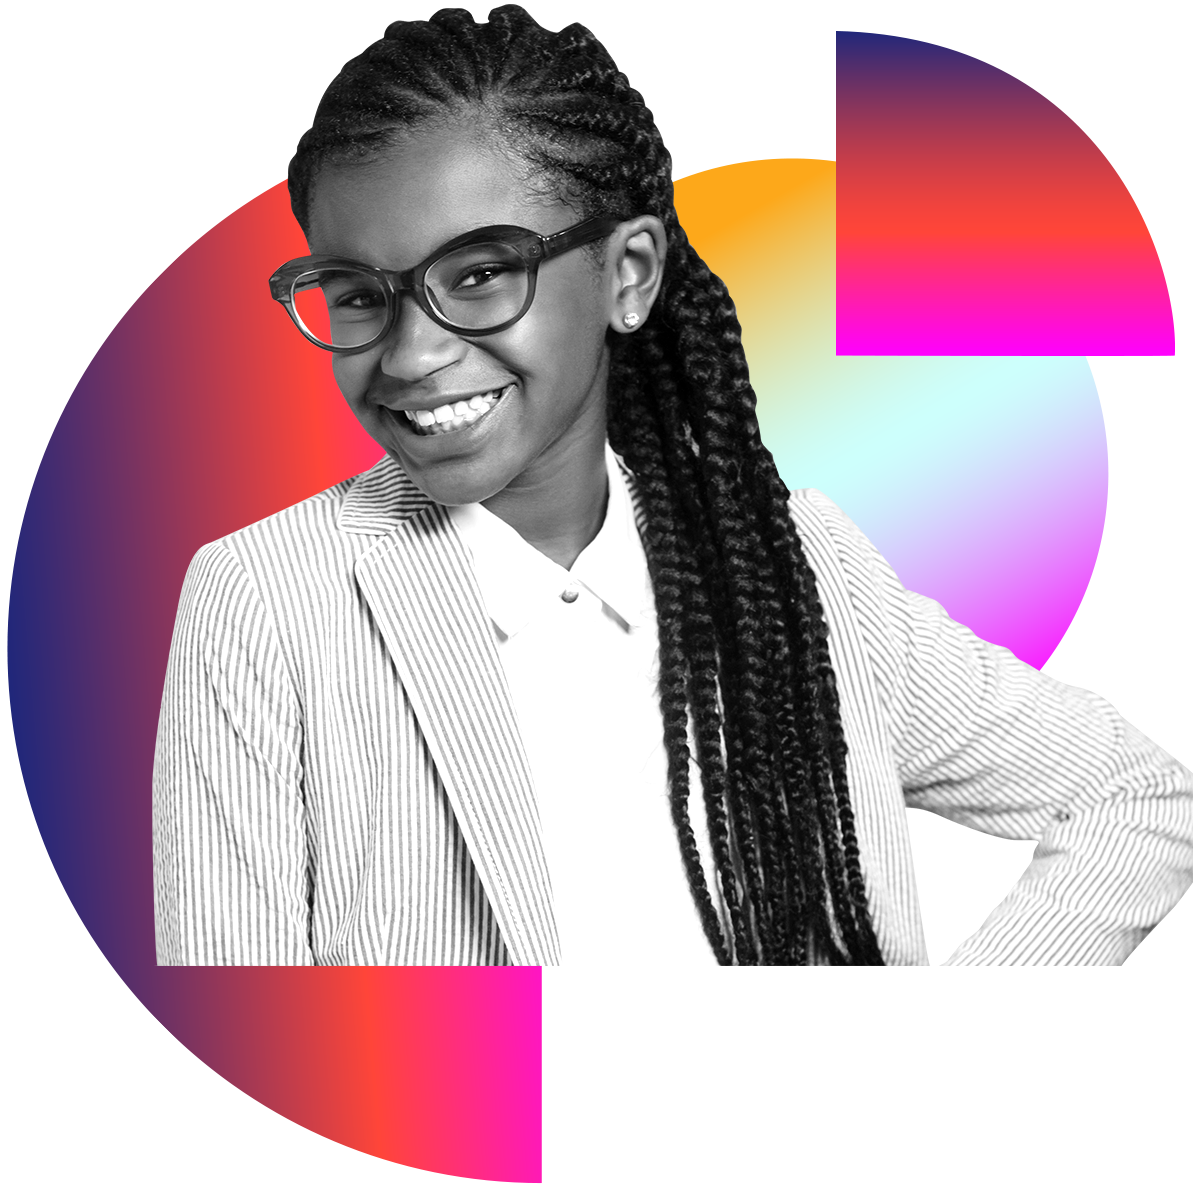 Photo illustration of Marley Dias in black and white surrounded by colored gradients